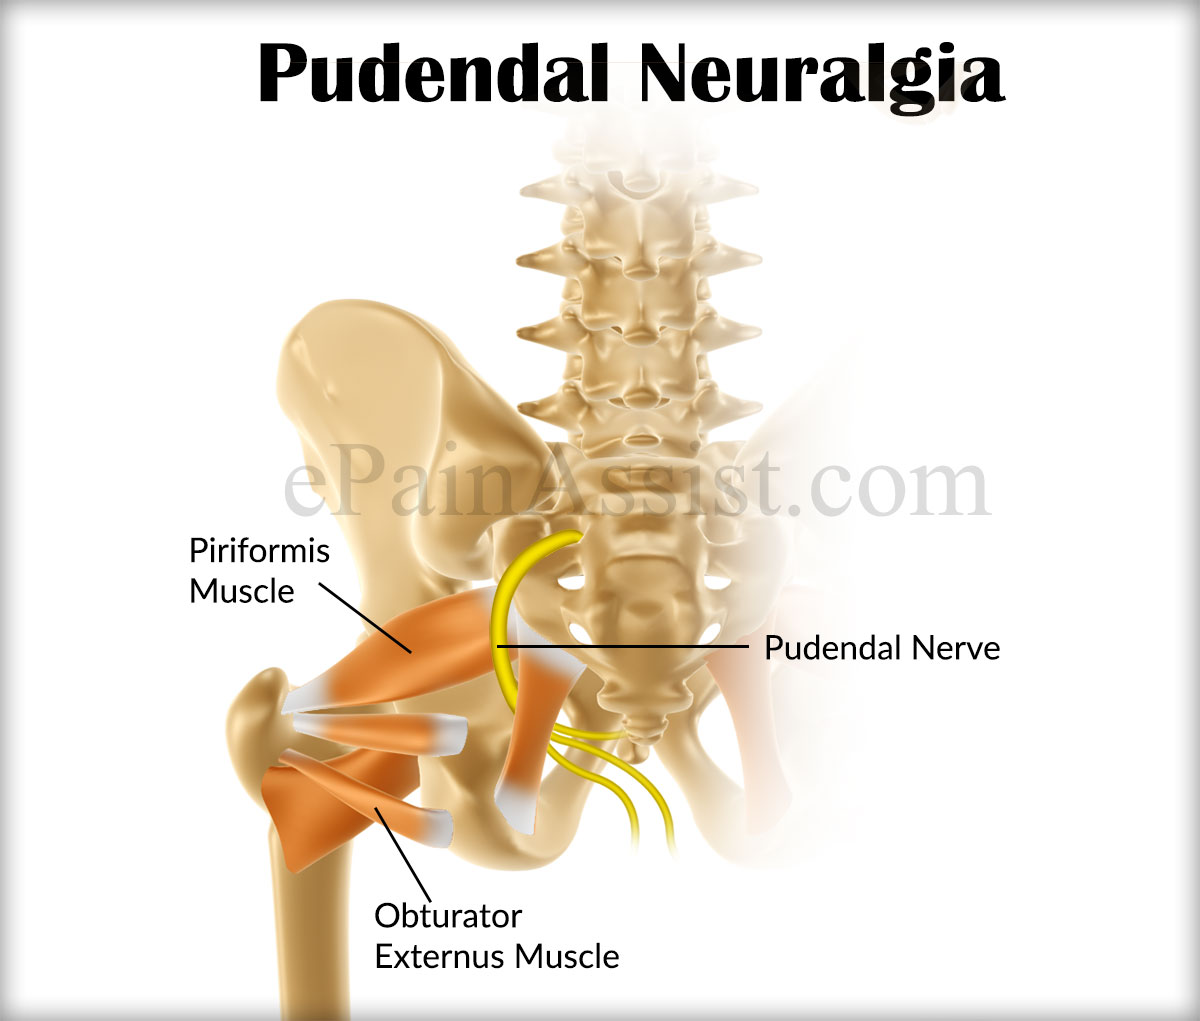 Pudendal Neuralgia Symptoms | Health Organization for ...